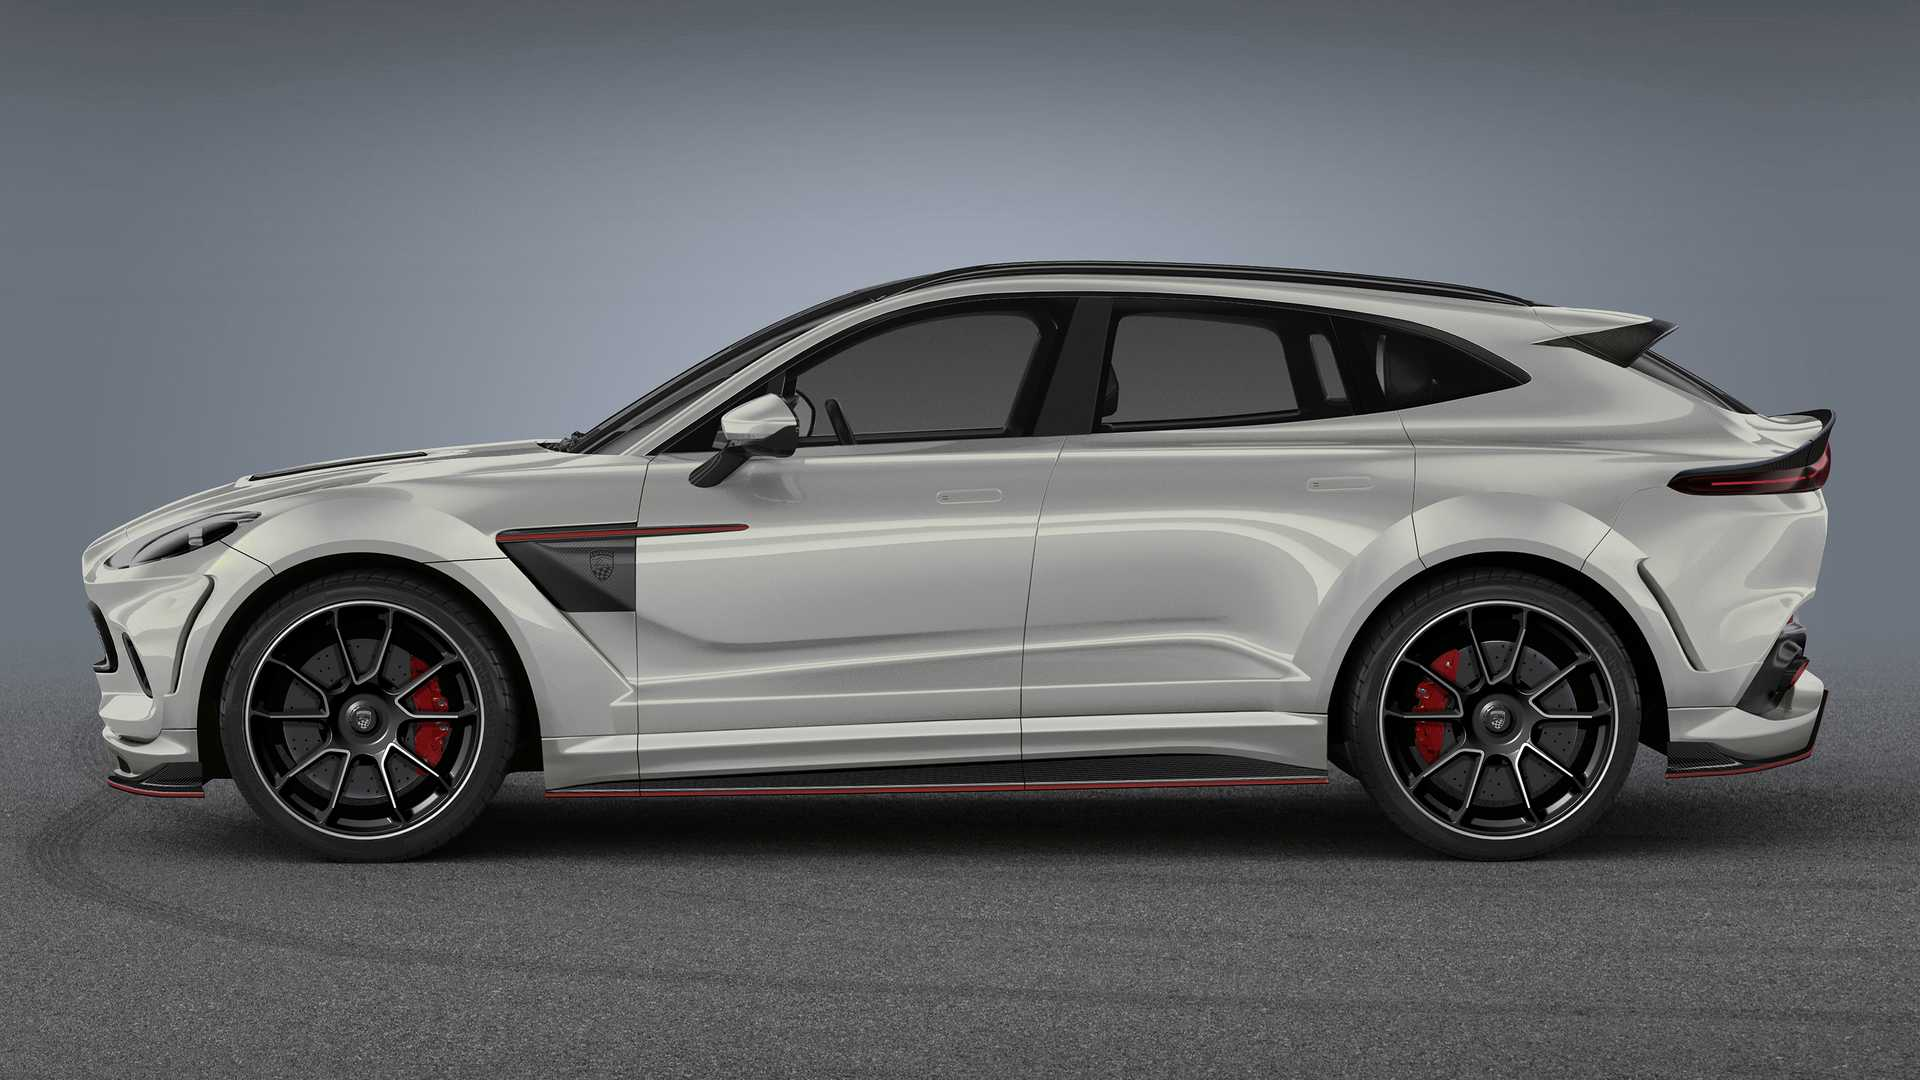 aston-martin-dbx-by-lumma-design-4